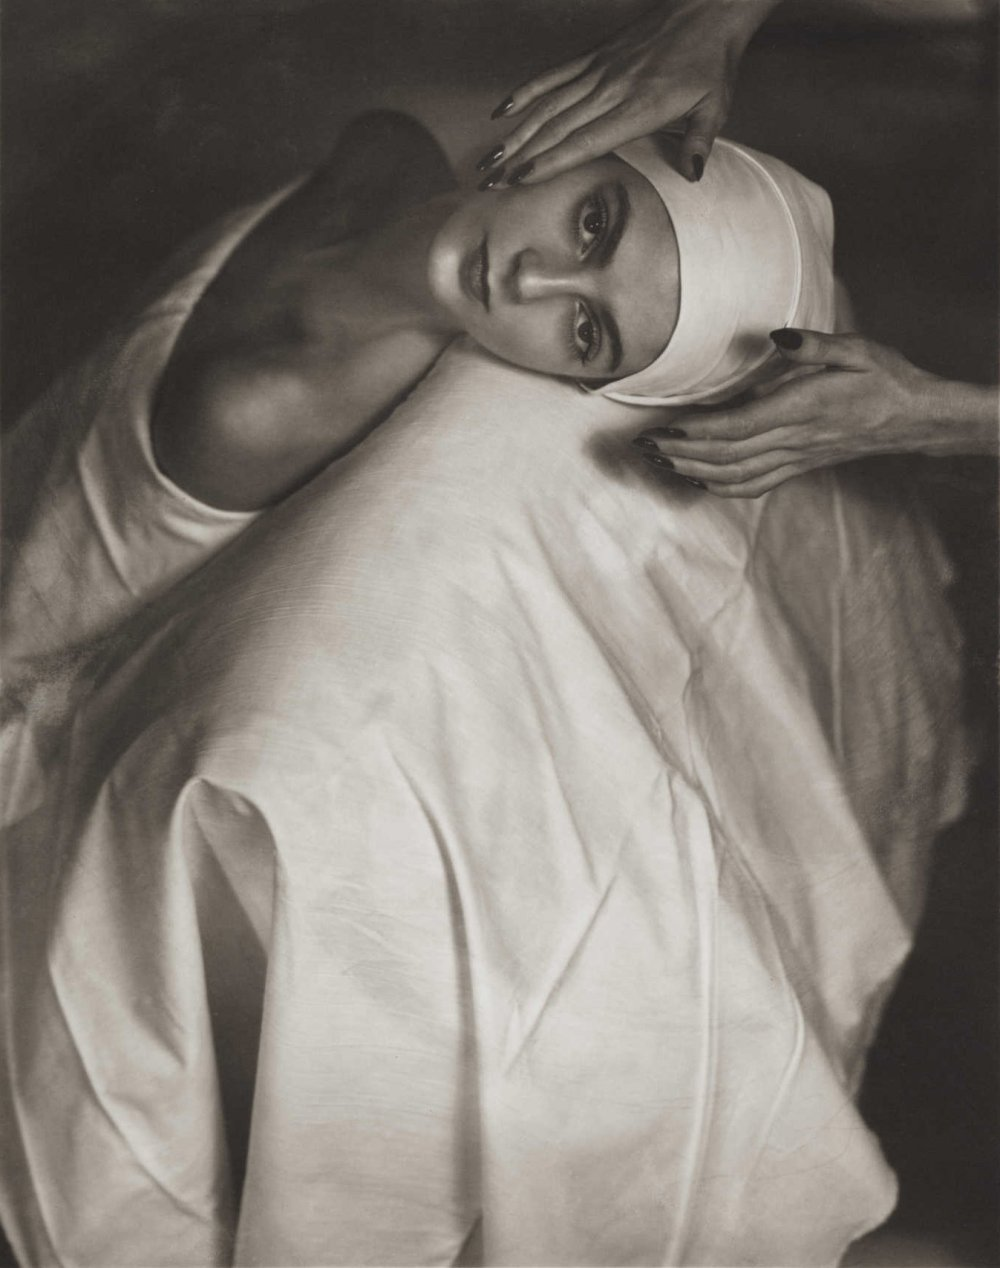 Carmen Face Massage by Horst P. Horst